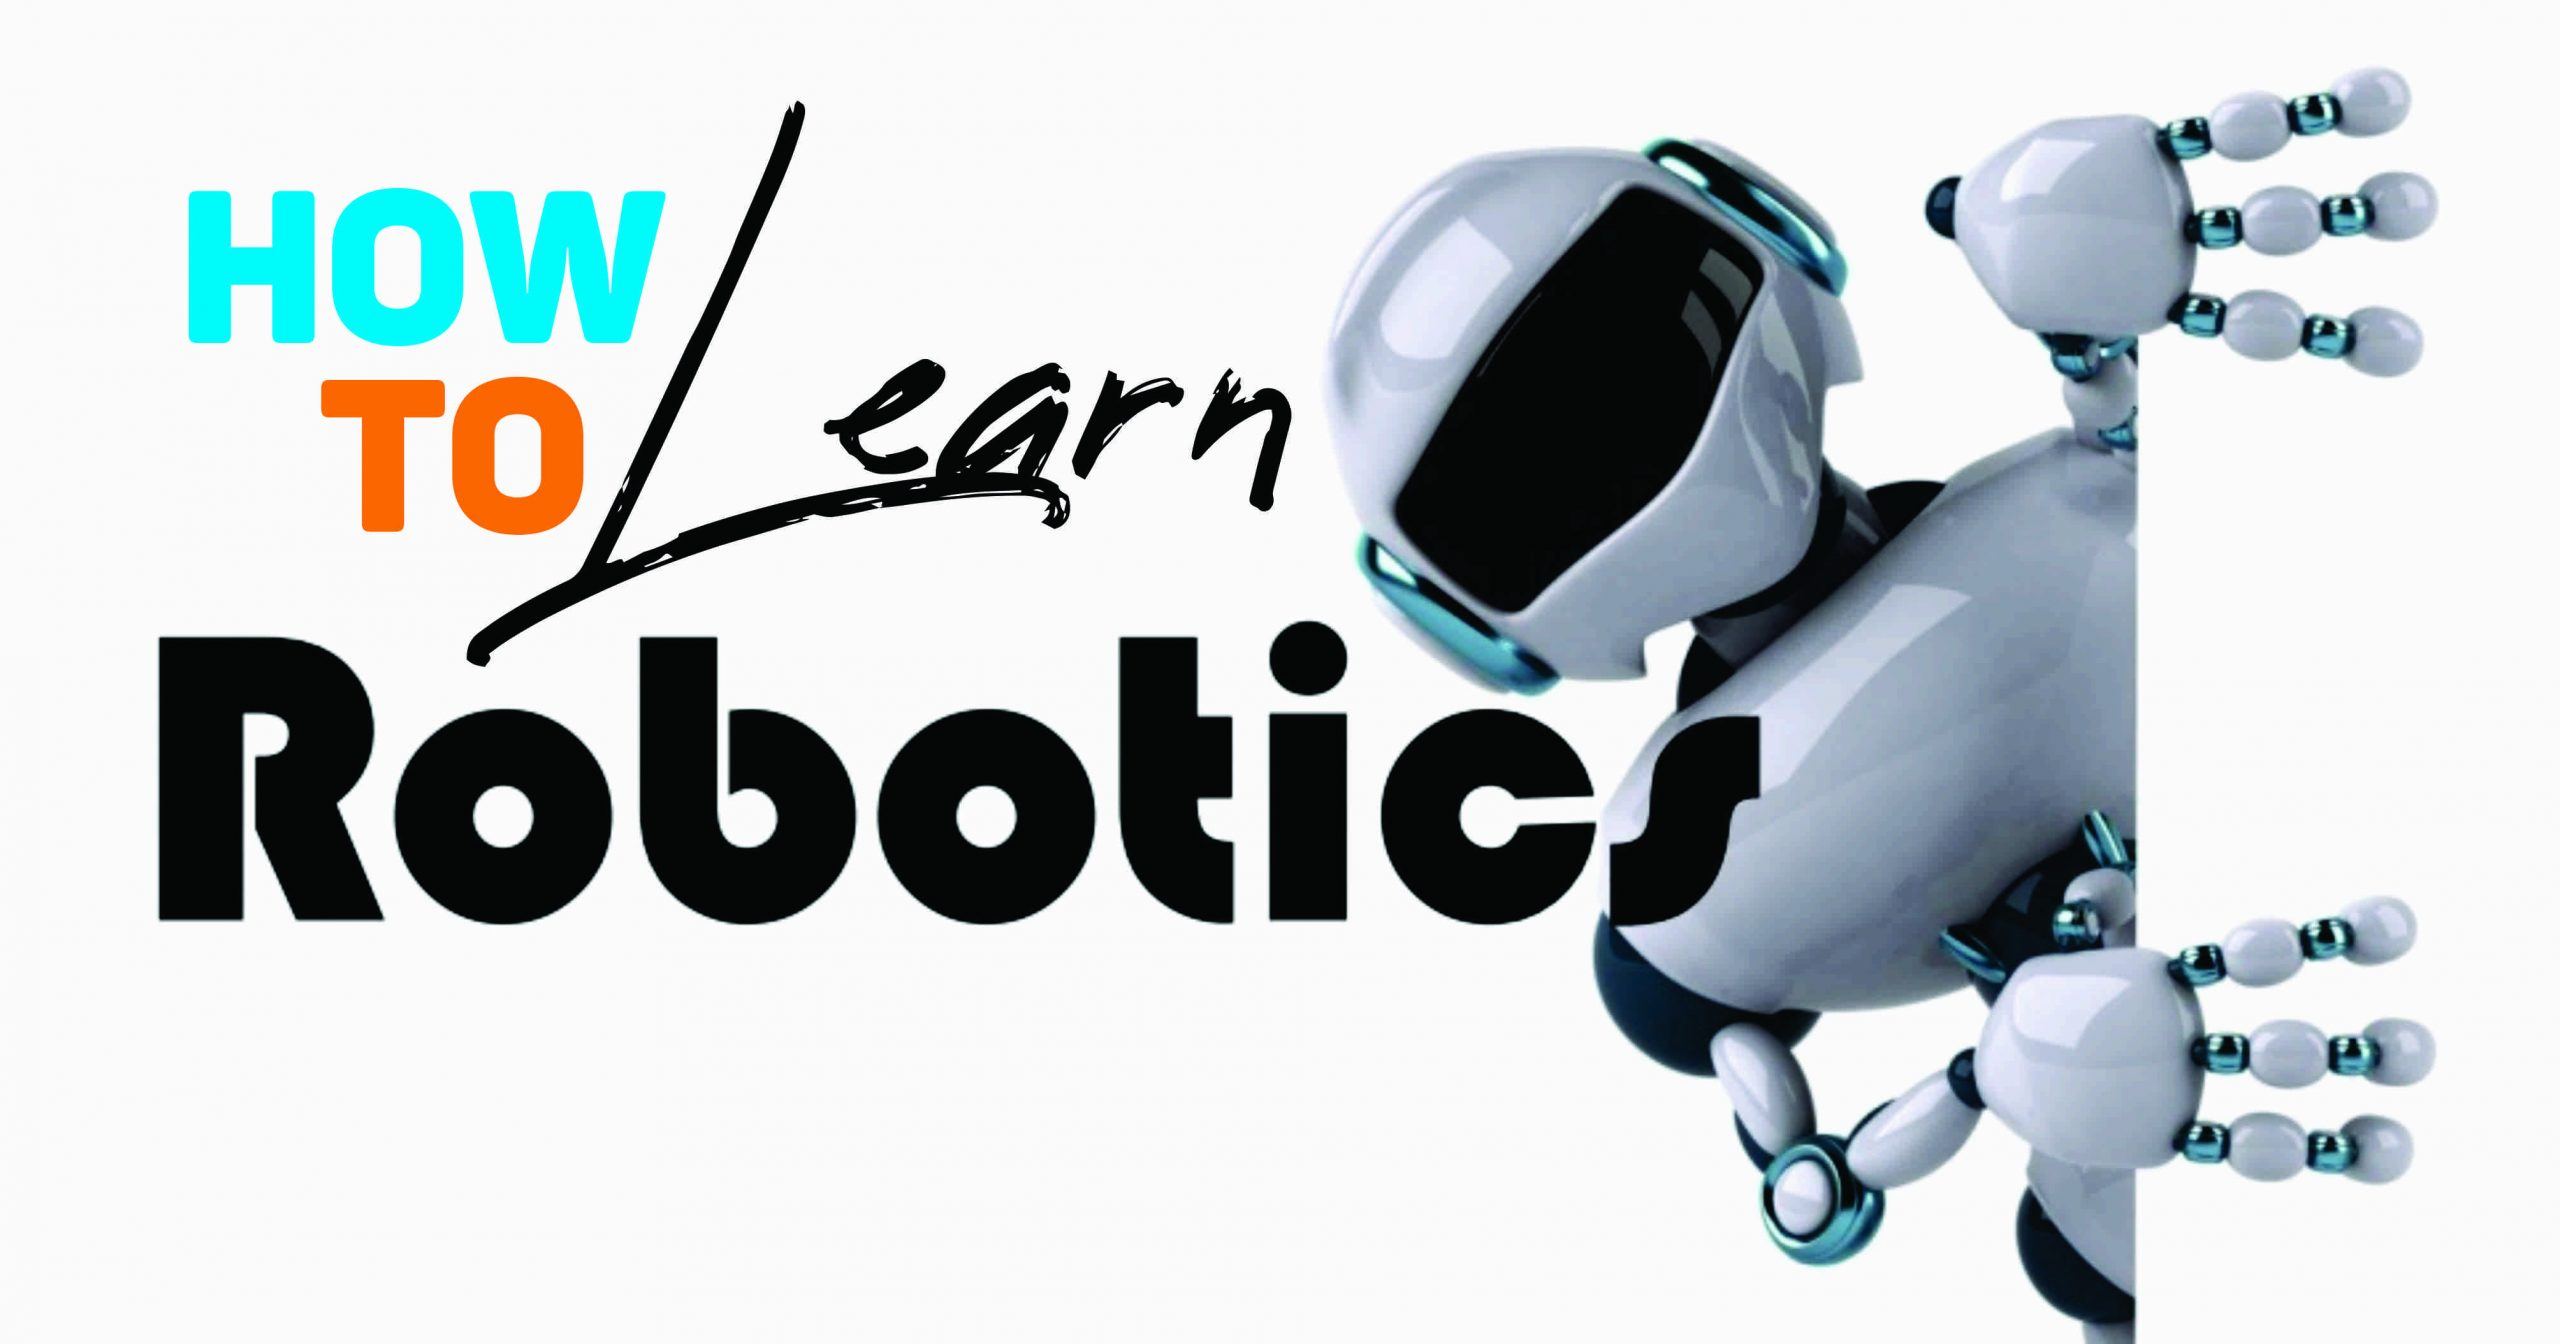 HOW TO START LEARNING ROBOTICS?